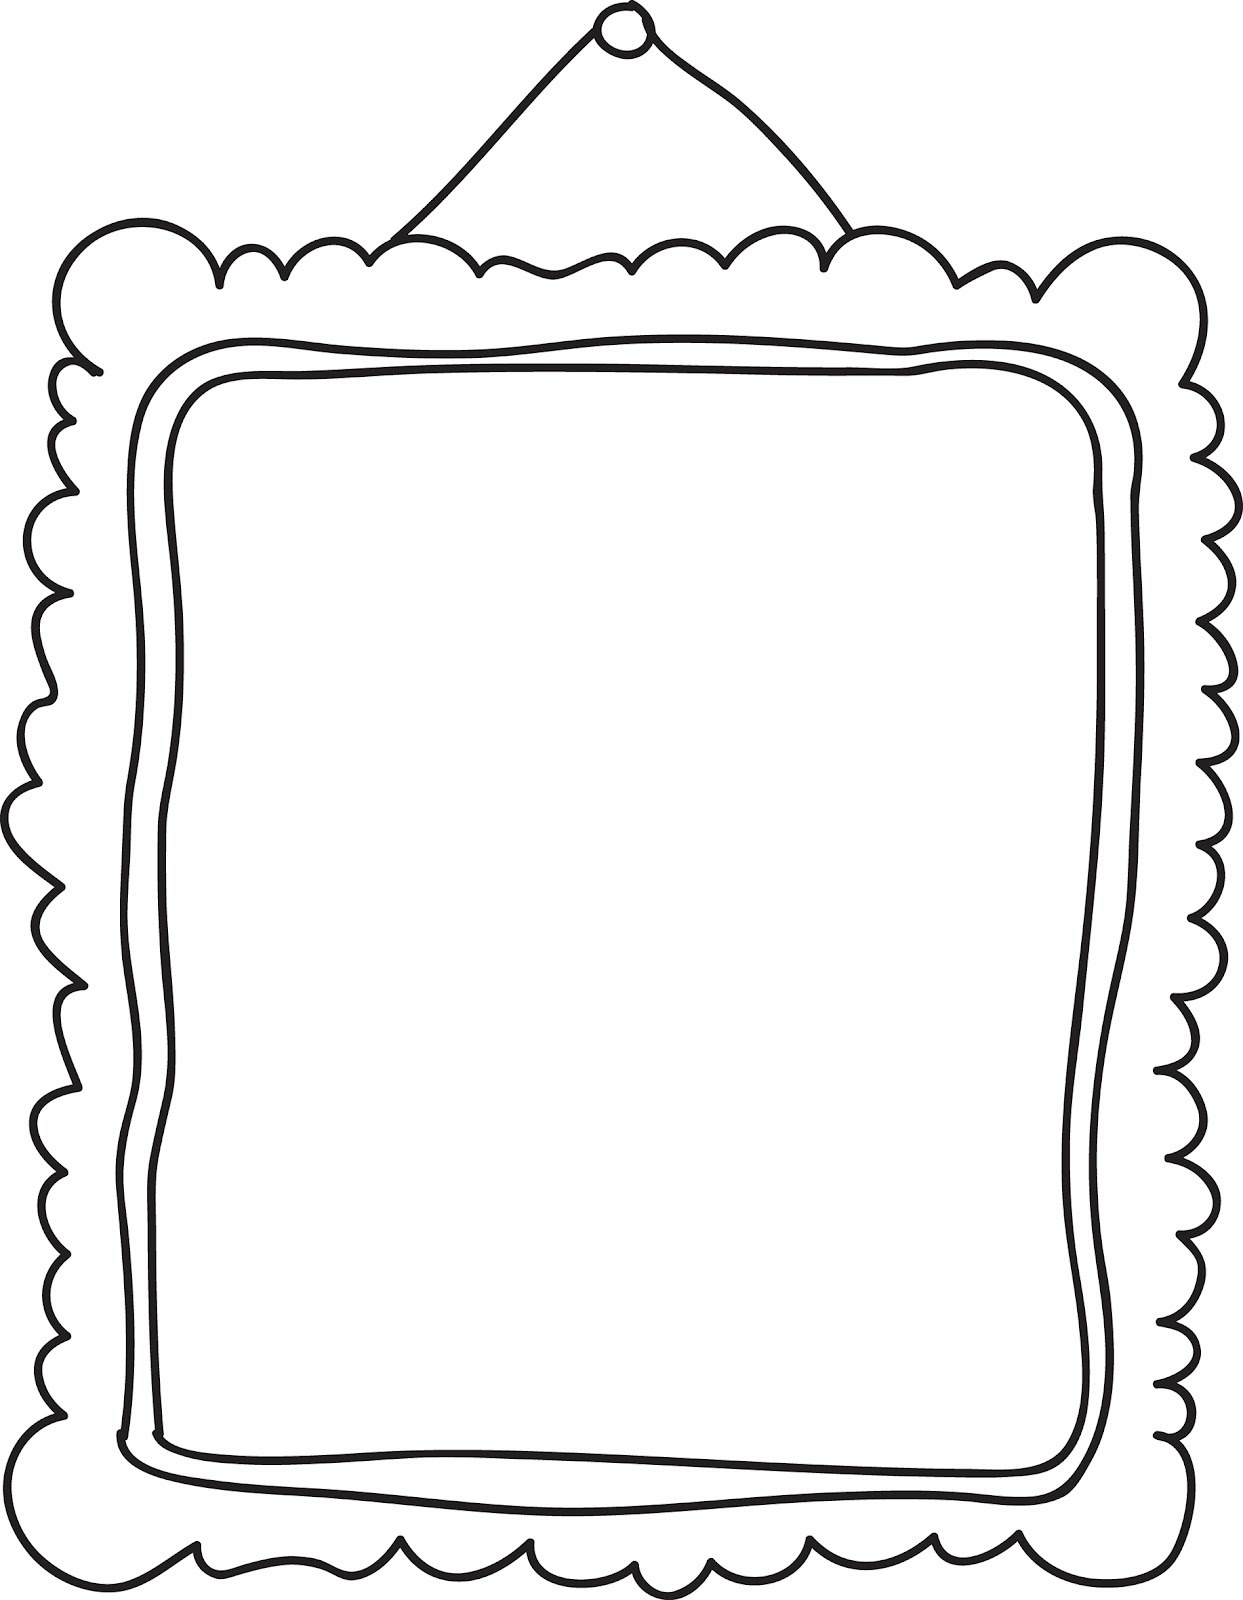 Frame clipart doodle. Free cliparts download clip